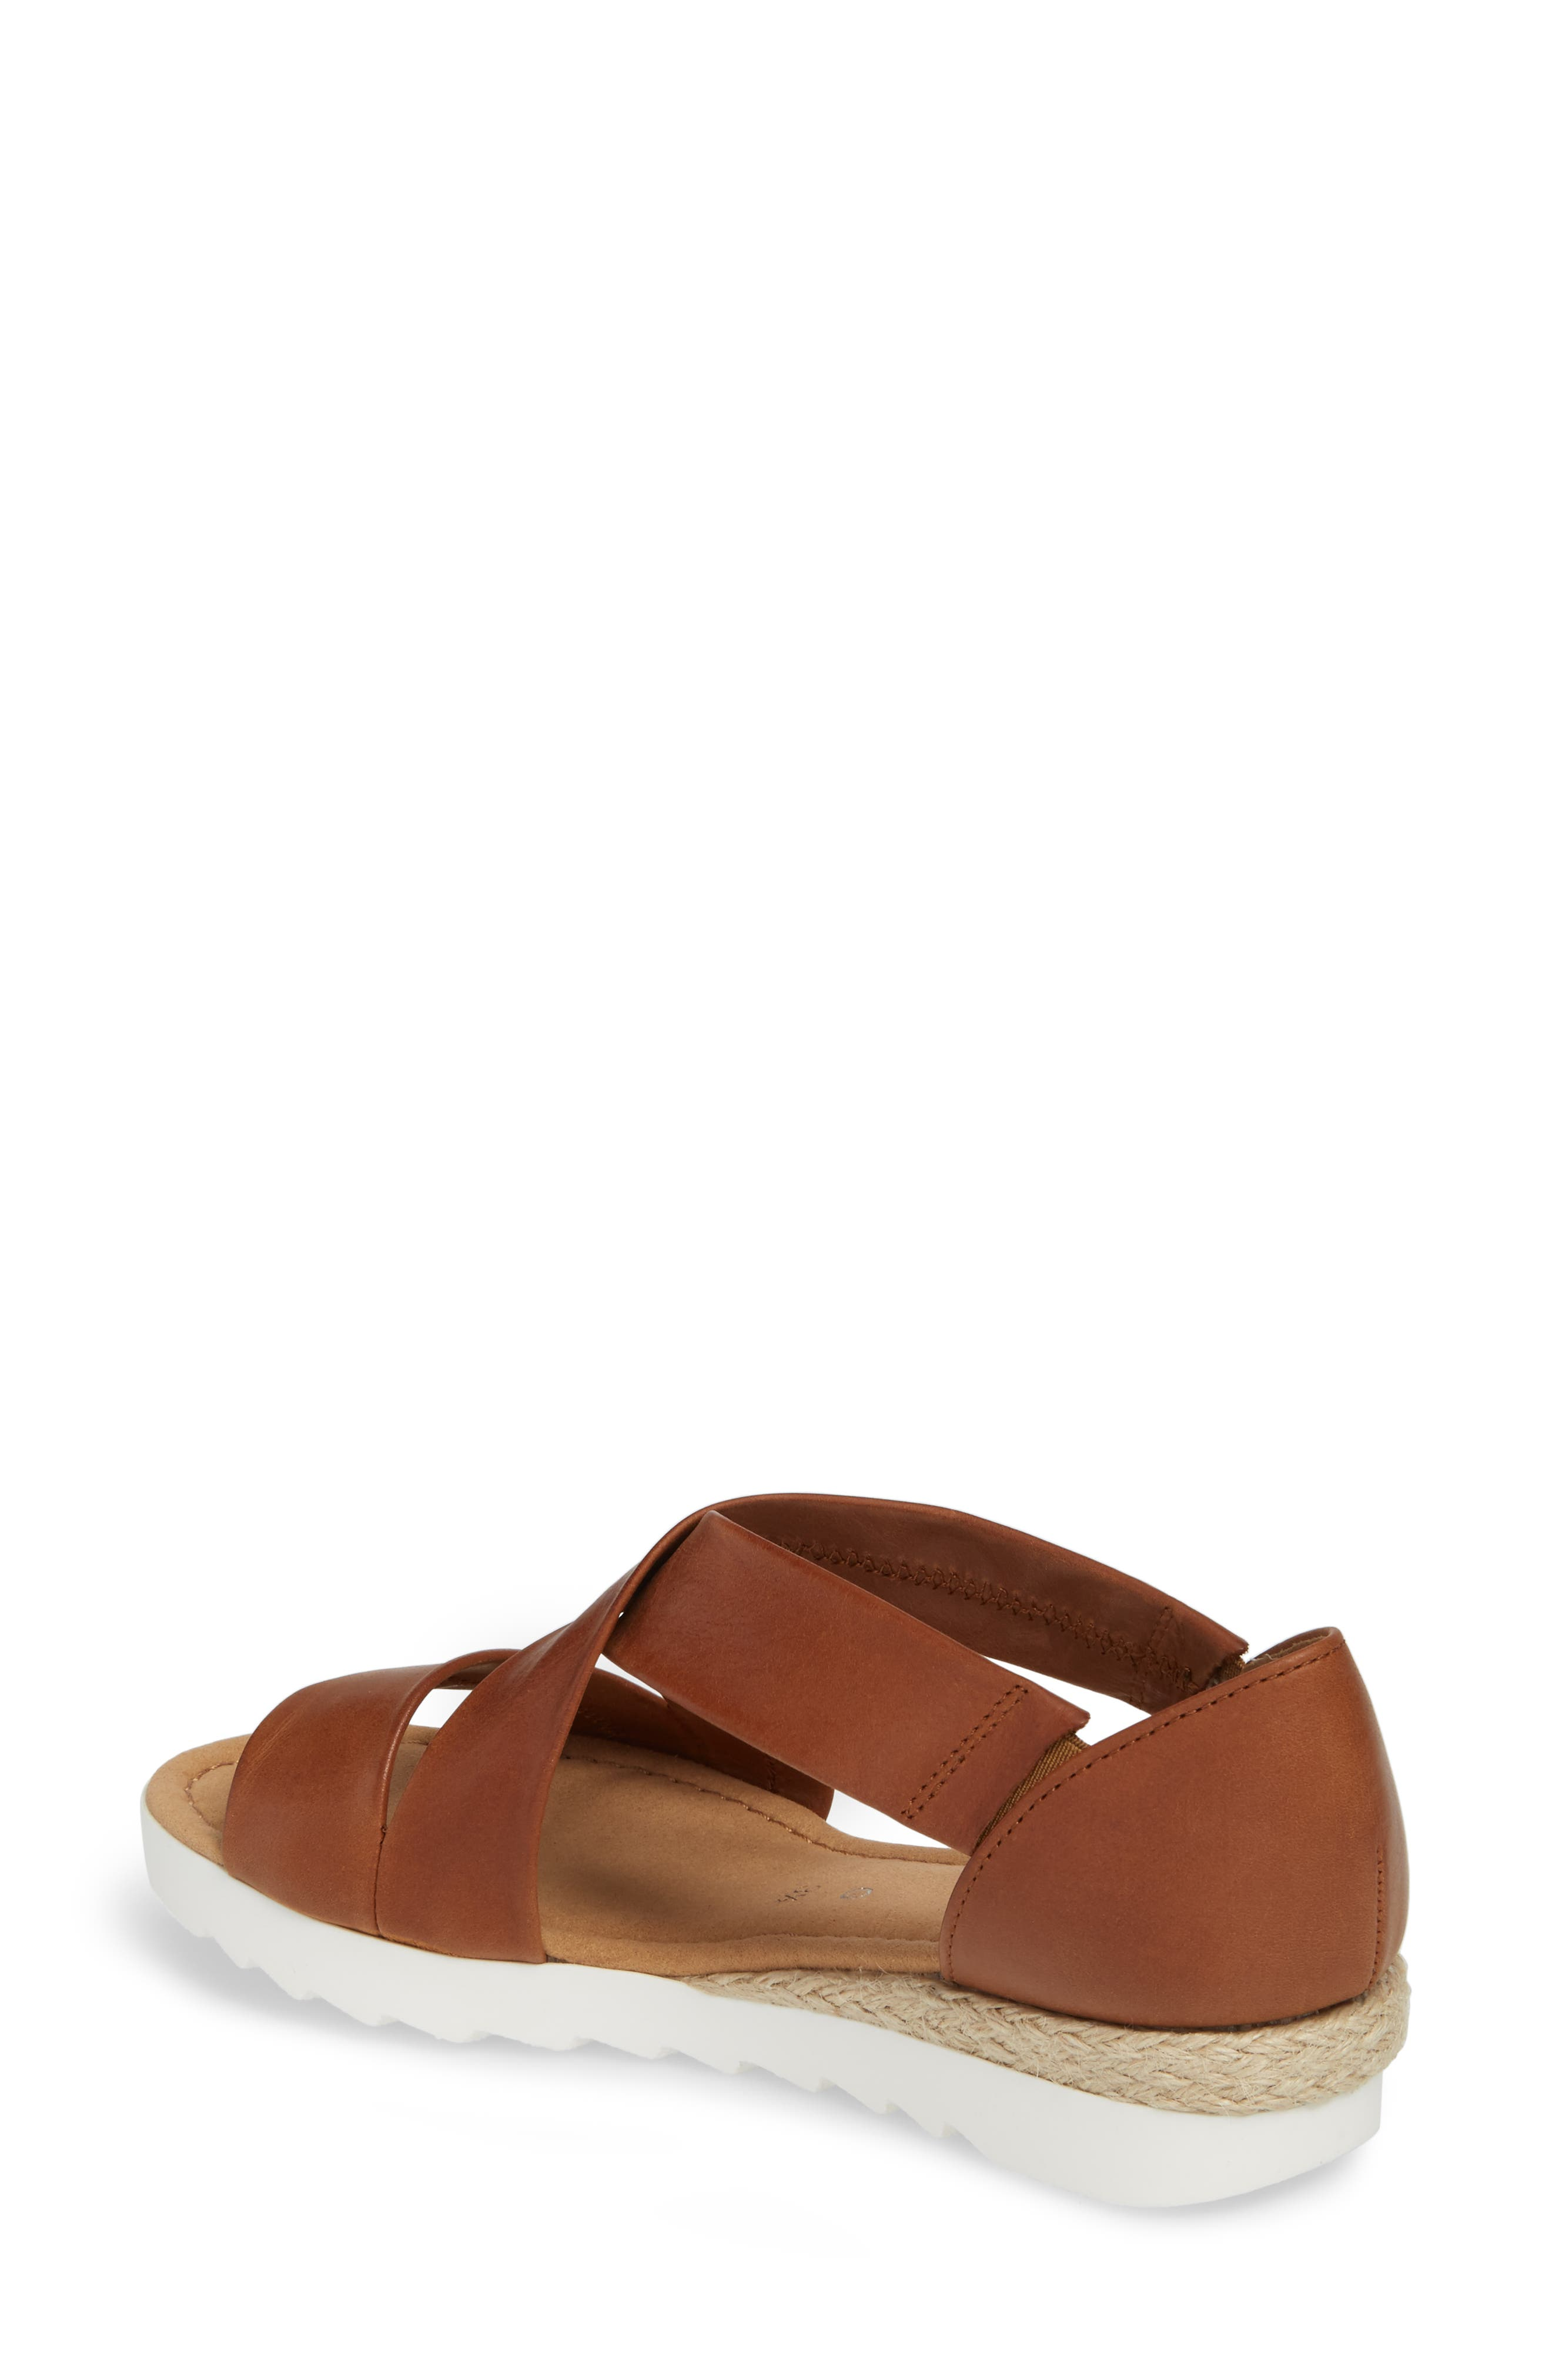 Cross Strap Sandal,                             Alternate thumbnail 2, color,                             BROWN LEATHER